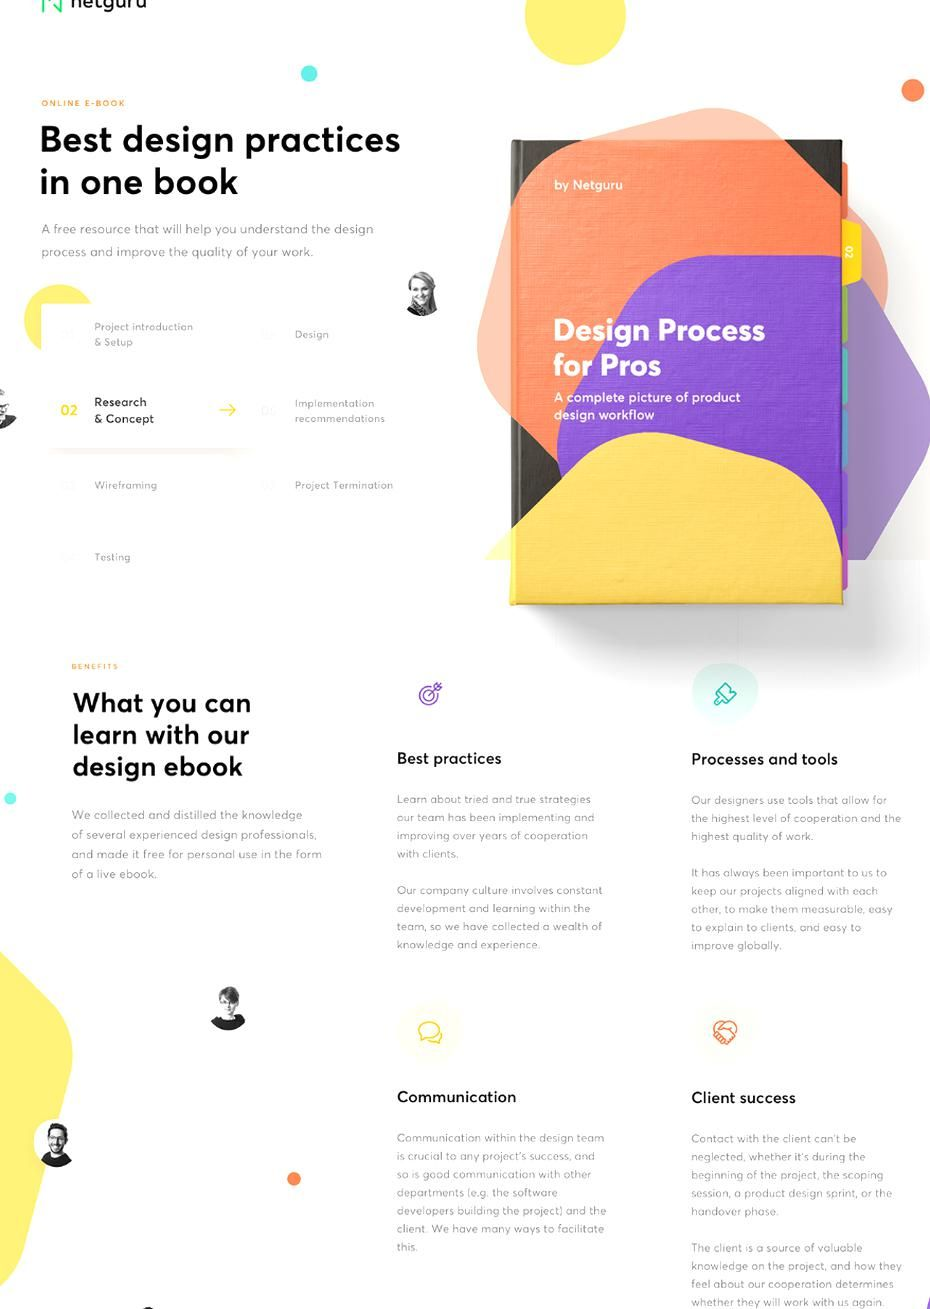 Design Process For Pros On Behance In 2020 Design Process Cool Designs Design